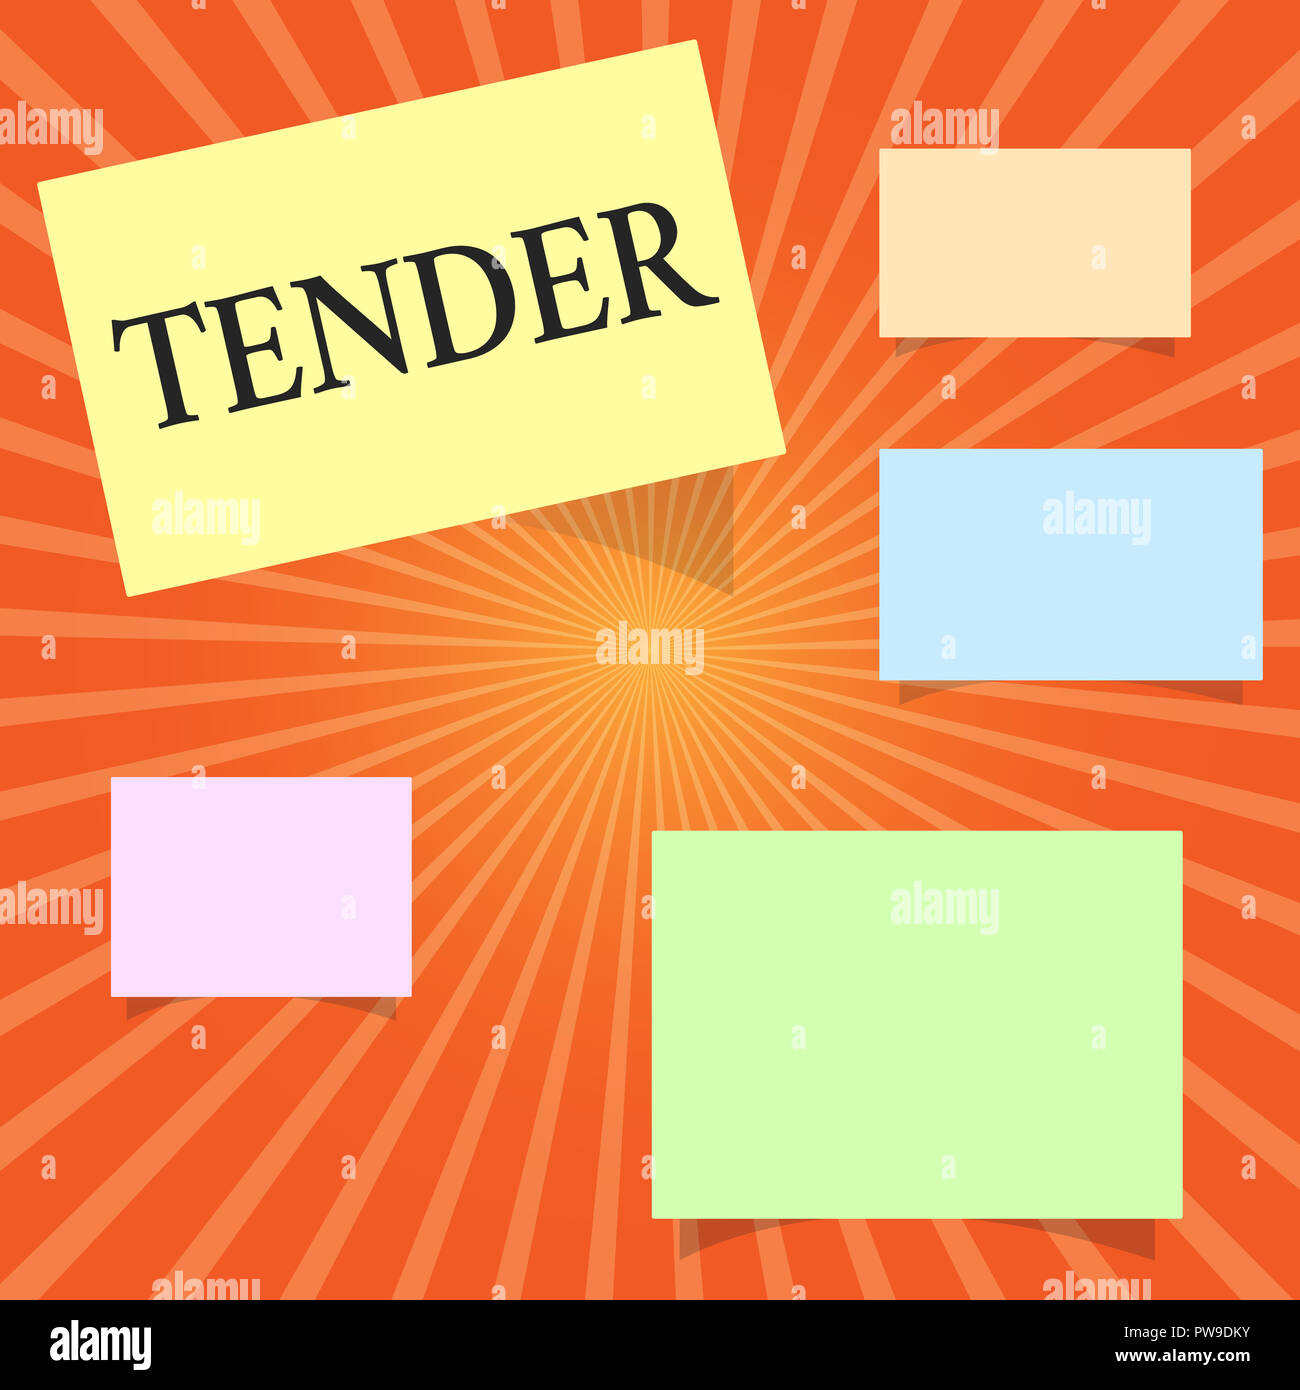 Text sign showing Tender. Conceptual photo showing gentleness kindness and affection sensitive to pain. - Stock Image